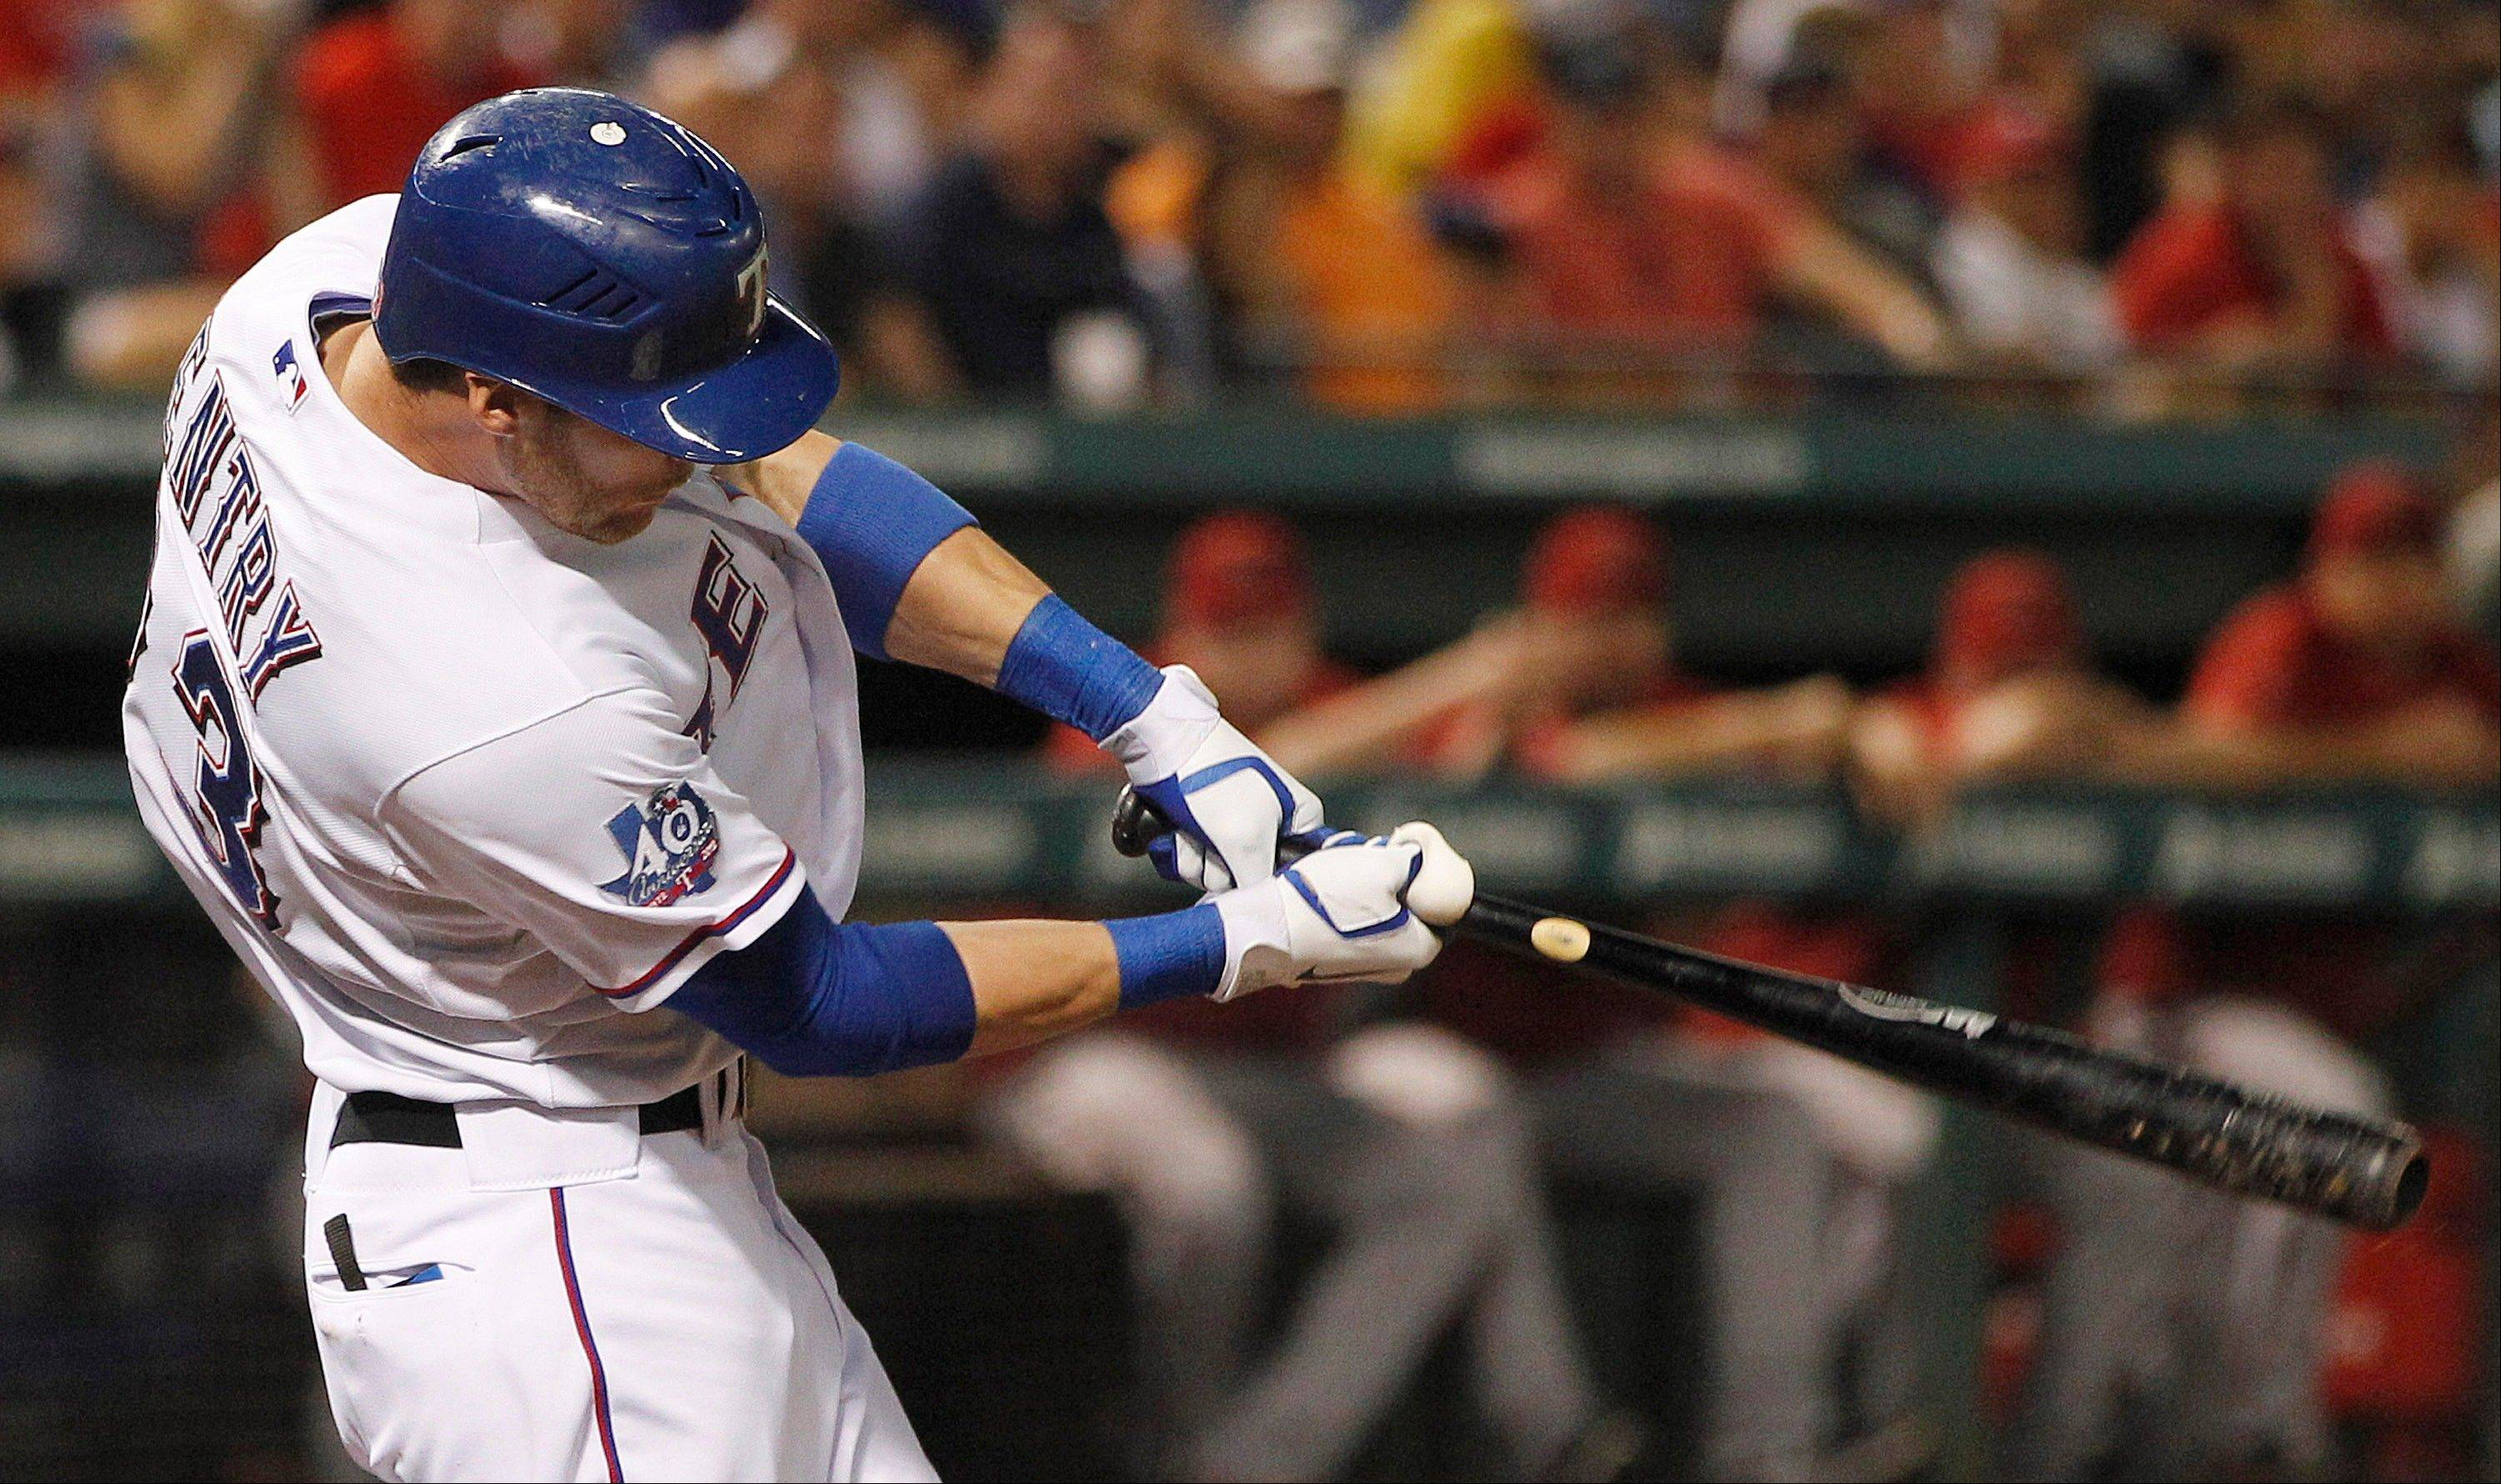 Texas Rangers Craig Gentry hits an RBI single Wednesday during the eighth inning against the Arizona Diamondbacks in Arlington, Texas. The Rangers won 1-0.